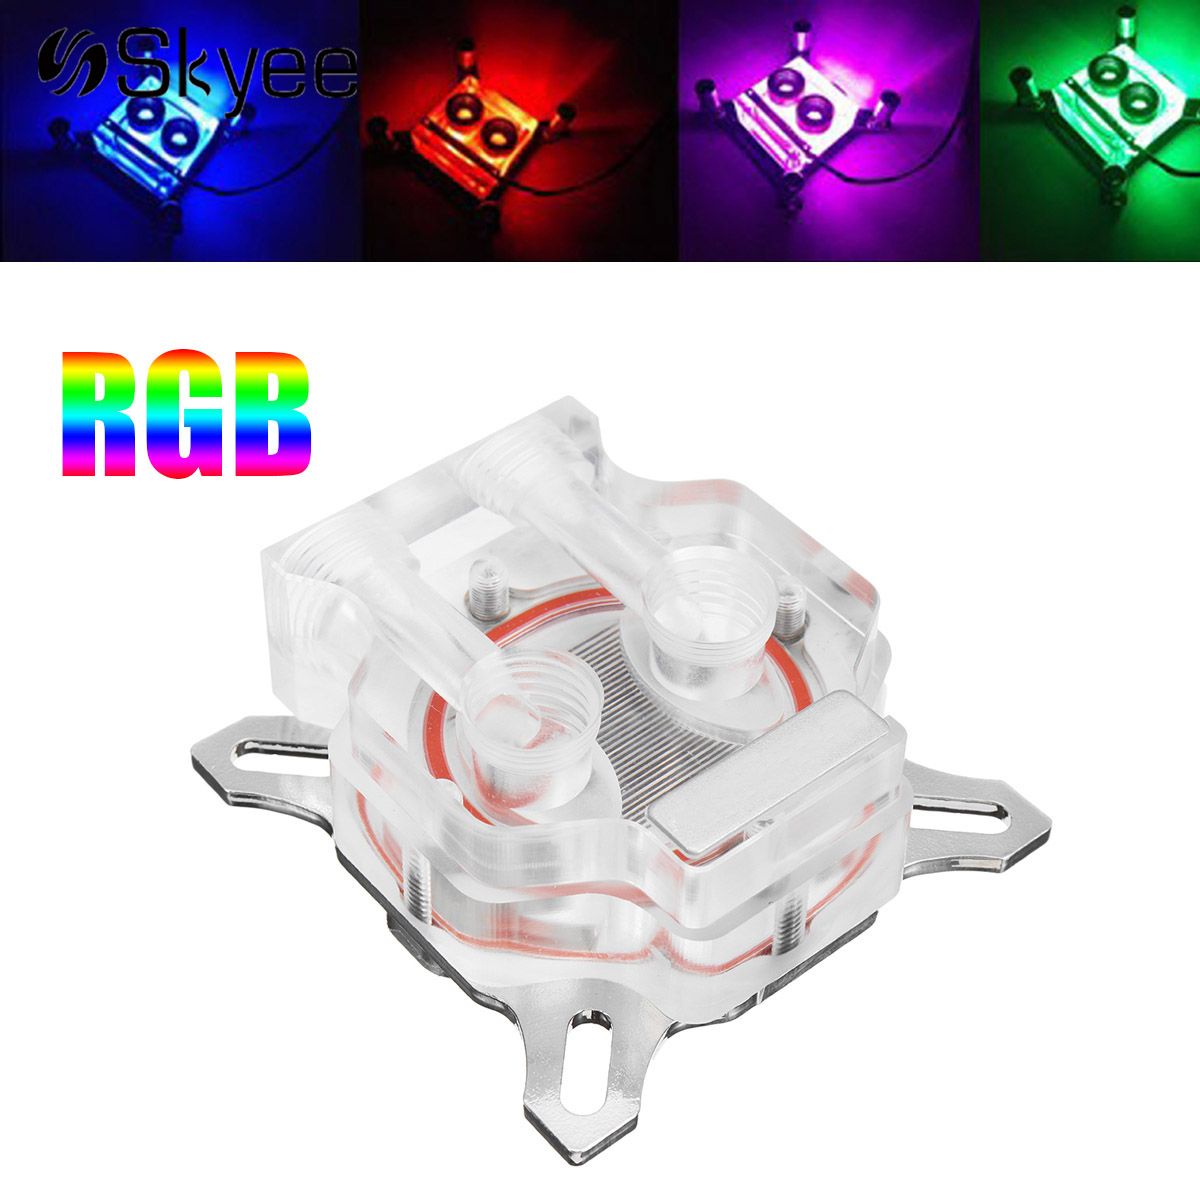 PC Water Cooling Block RGB LED Light Video Card GPU Core Cover Water Heatsink Suitable for 43-53mm Hole Pitch VGA-TMD wt 021 43 53mm hole distance transparent graphics card pom cooling head black silver